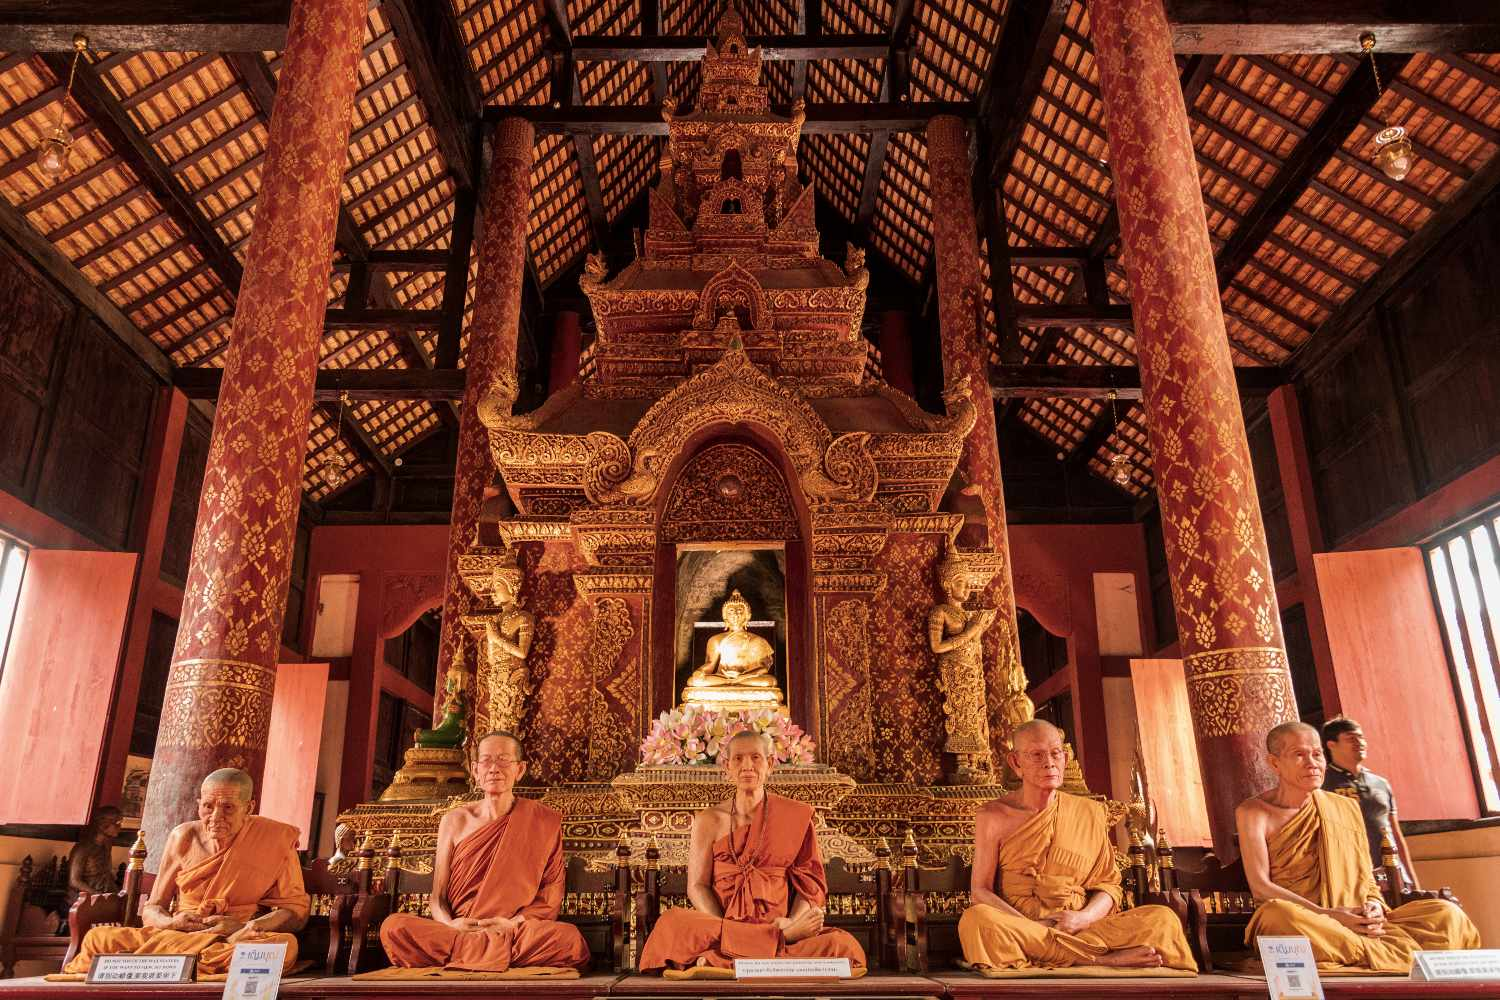 Statues of monks that look just like the real thing in Chiang Mai